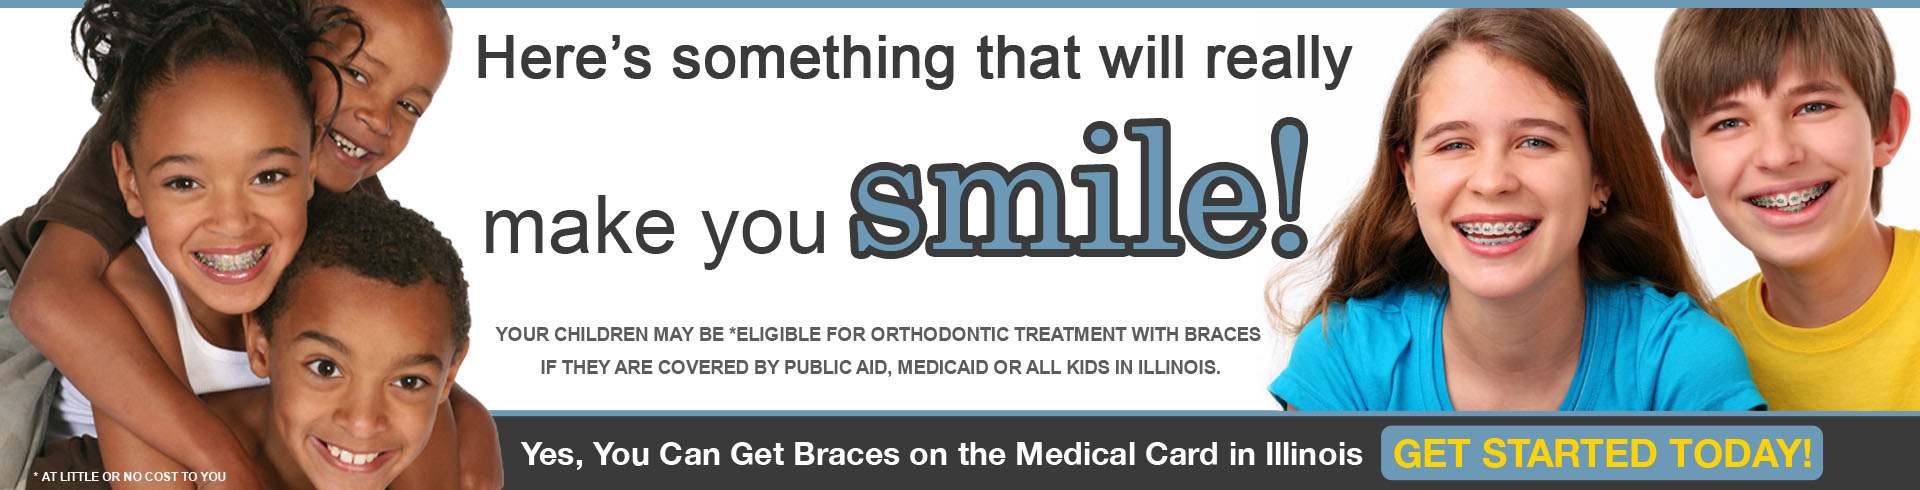 medicaid orthodontist medical card braces frenos con tarjeta medica